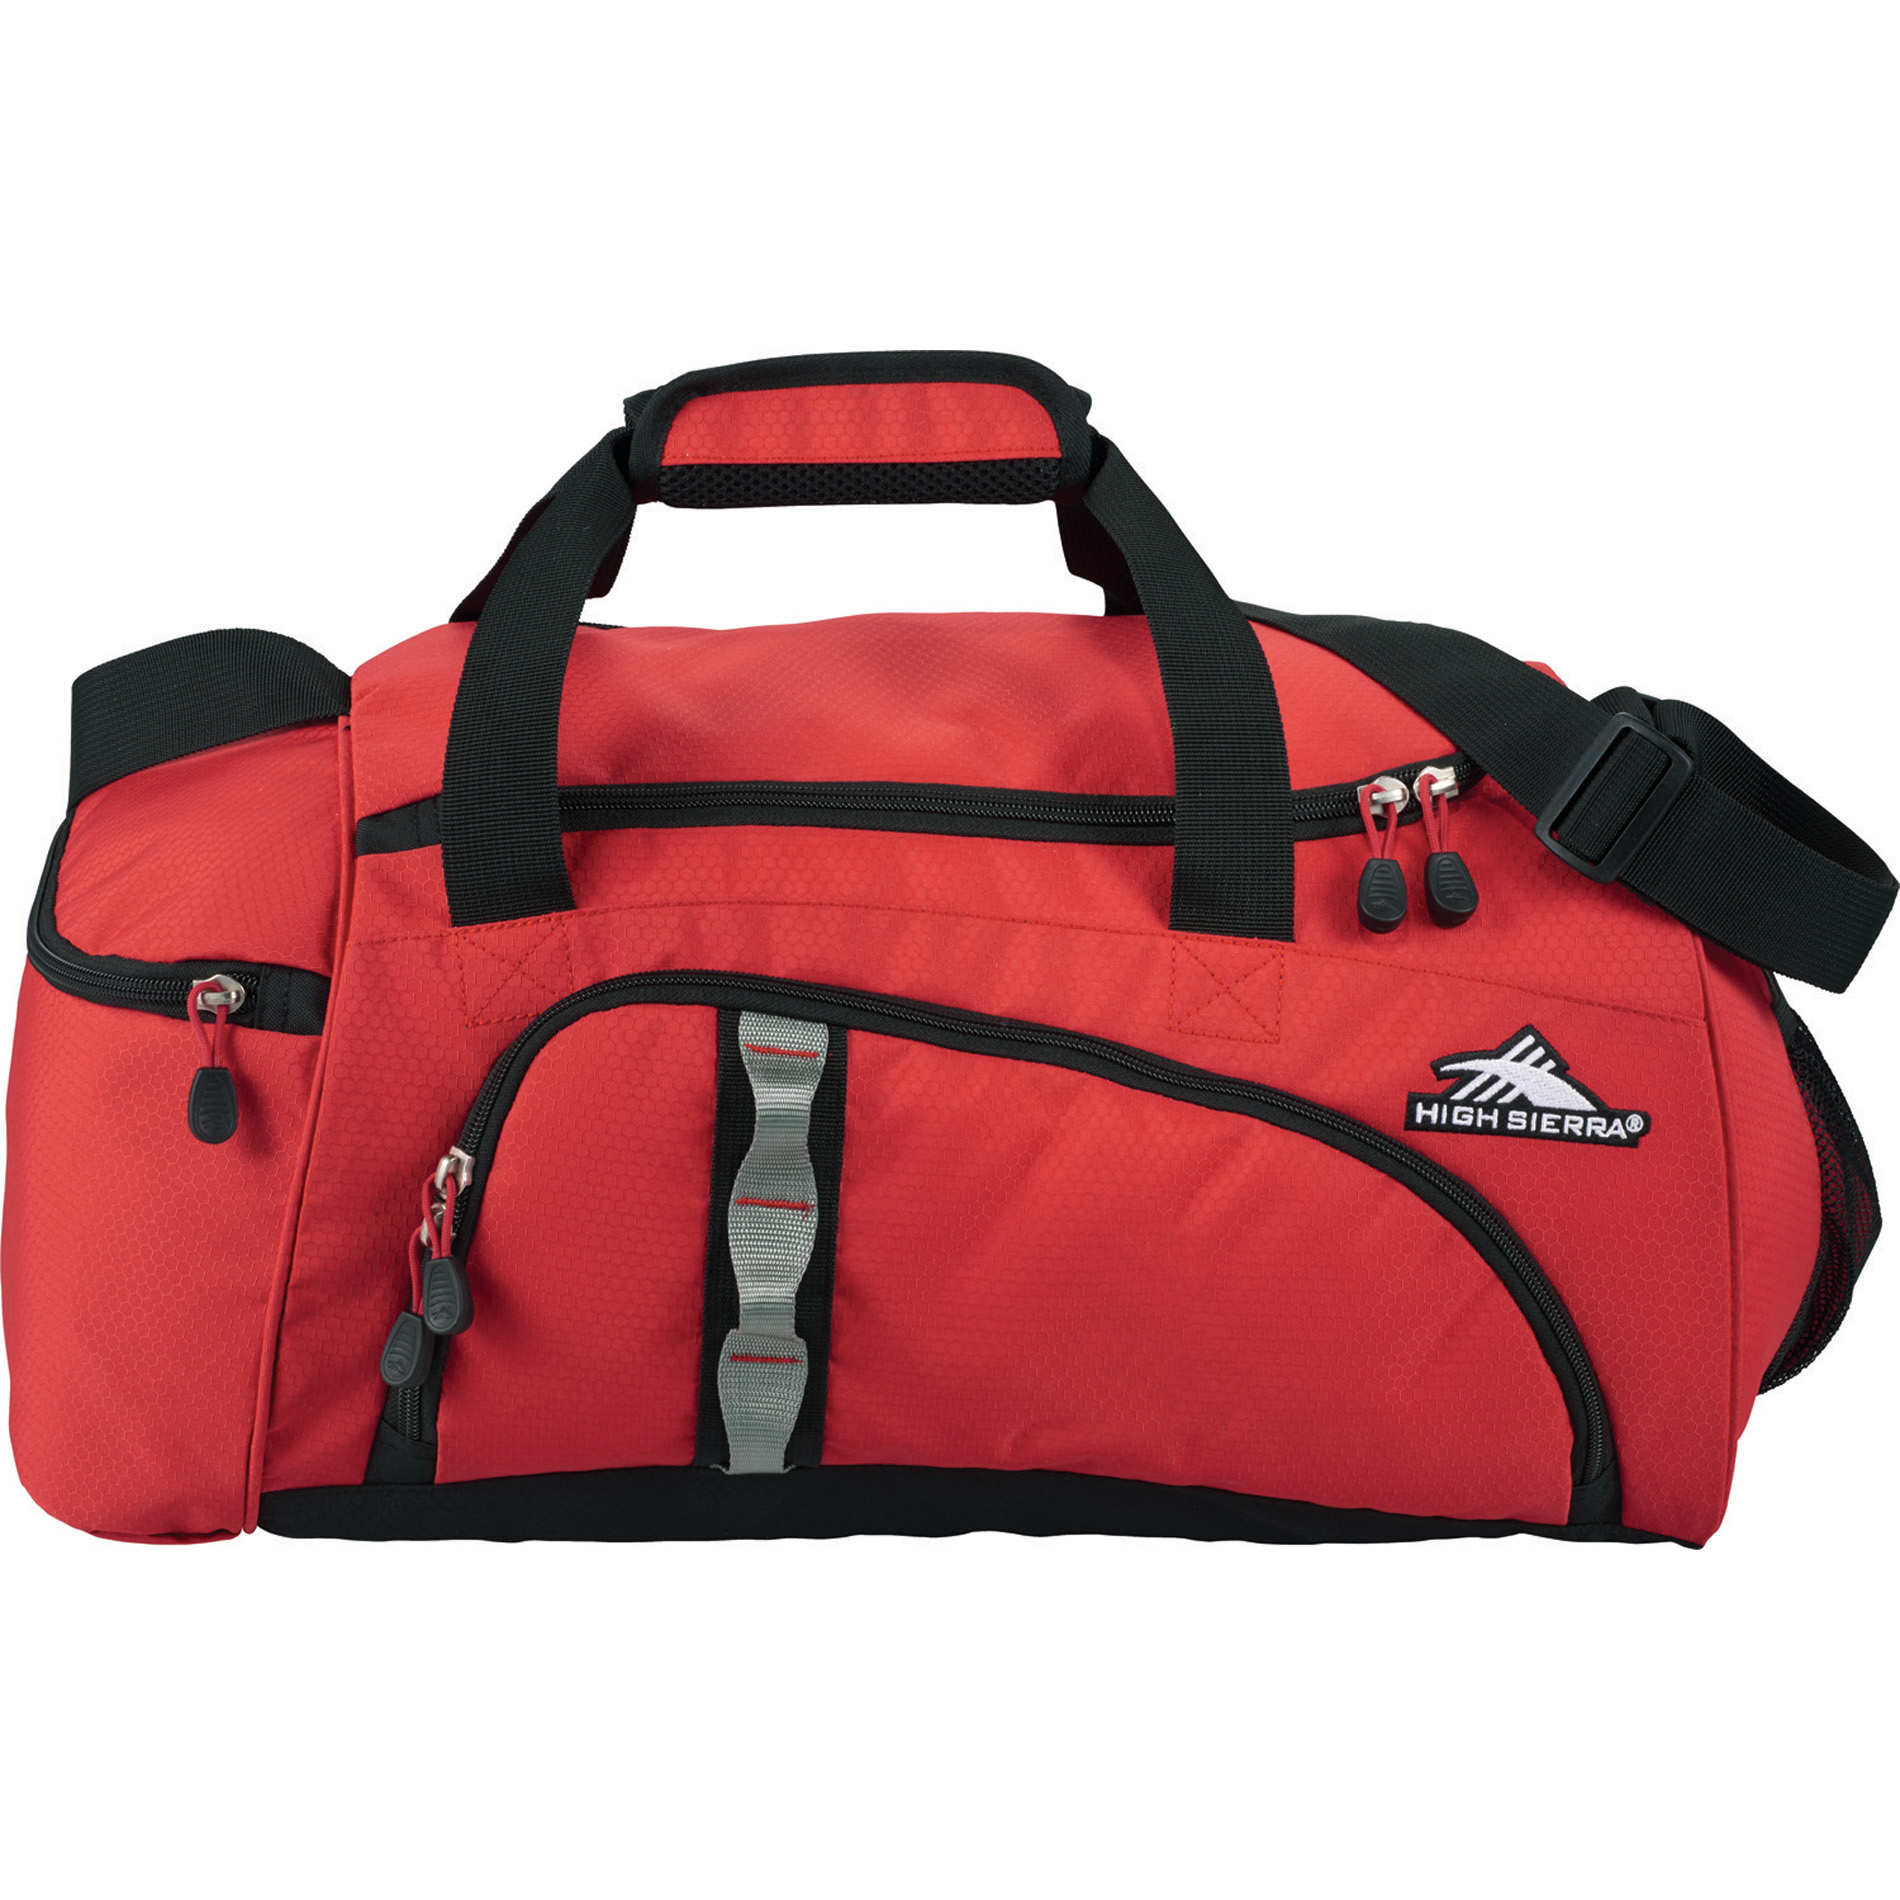 "High Sierra 8052-28 - 21.5"" Warp Duffel Bag"